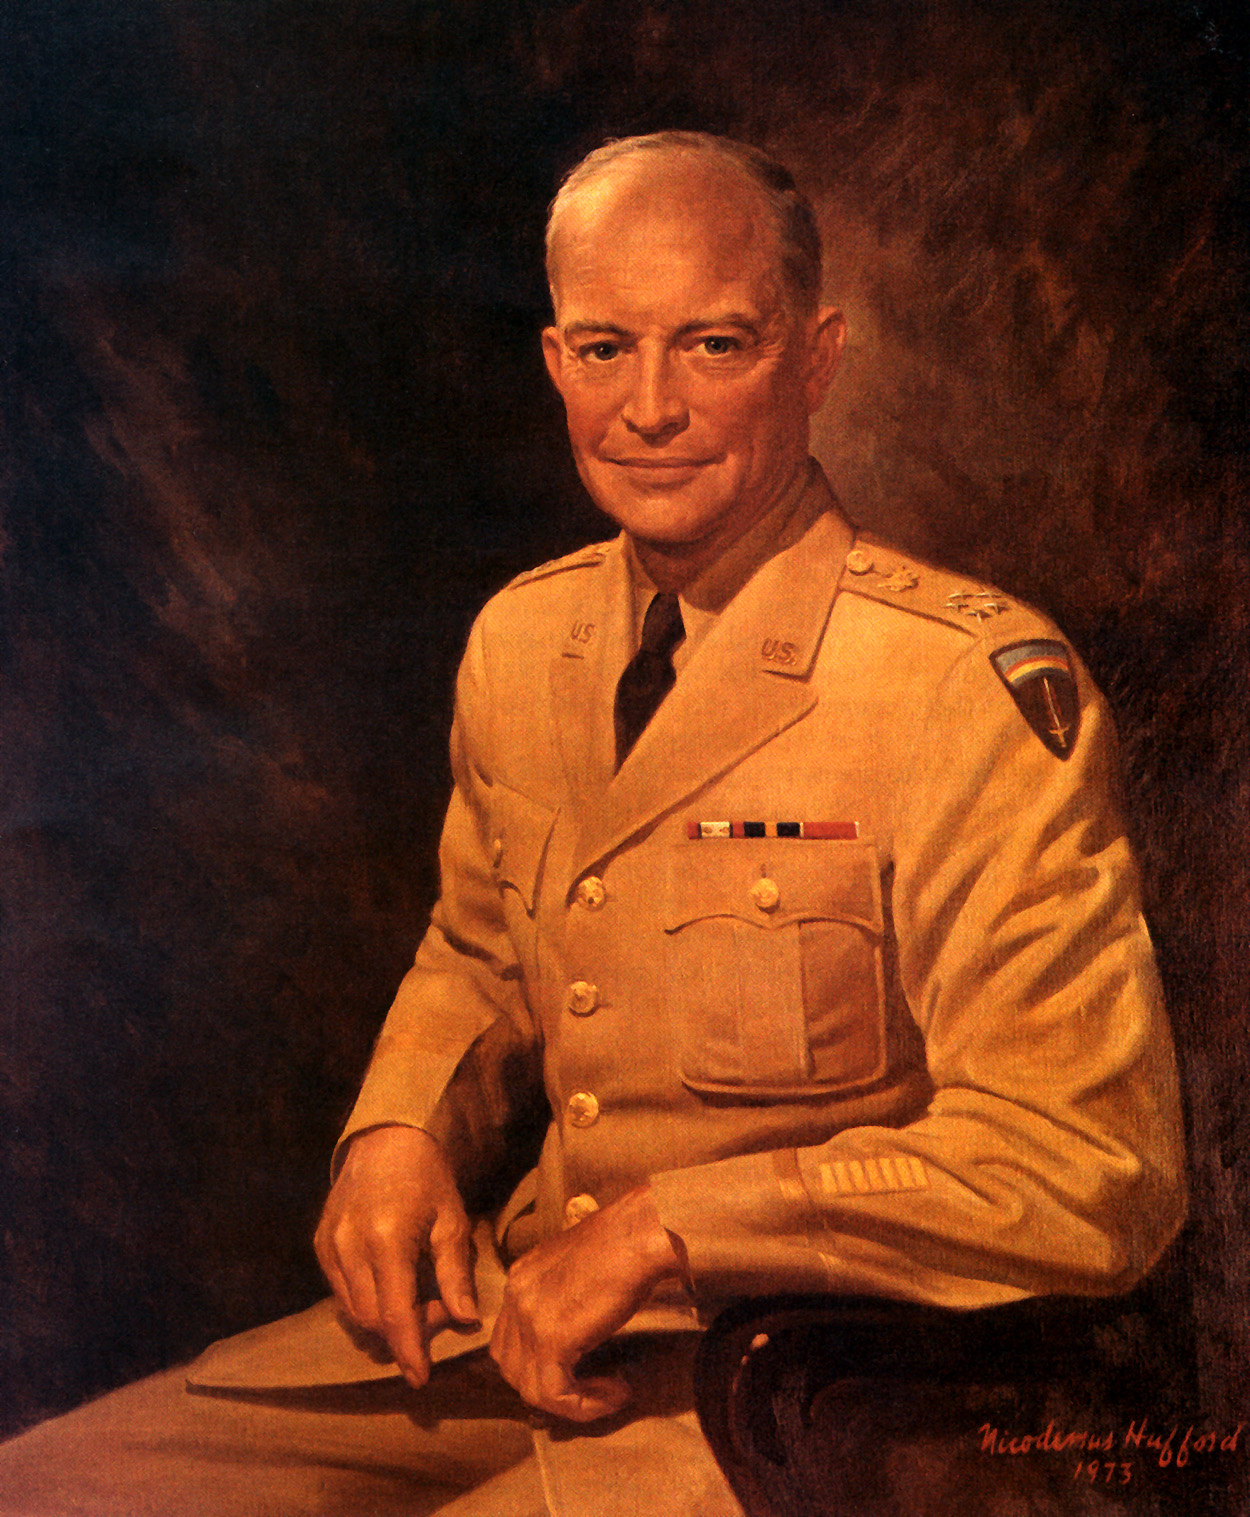 Dwight d eisenhower military governor and chief of staff general eisenhower publicscrutiny Image collections